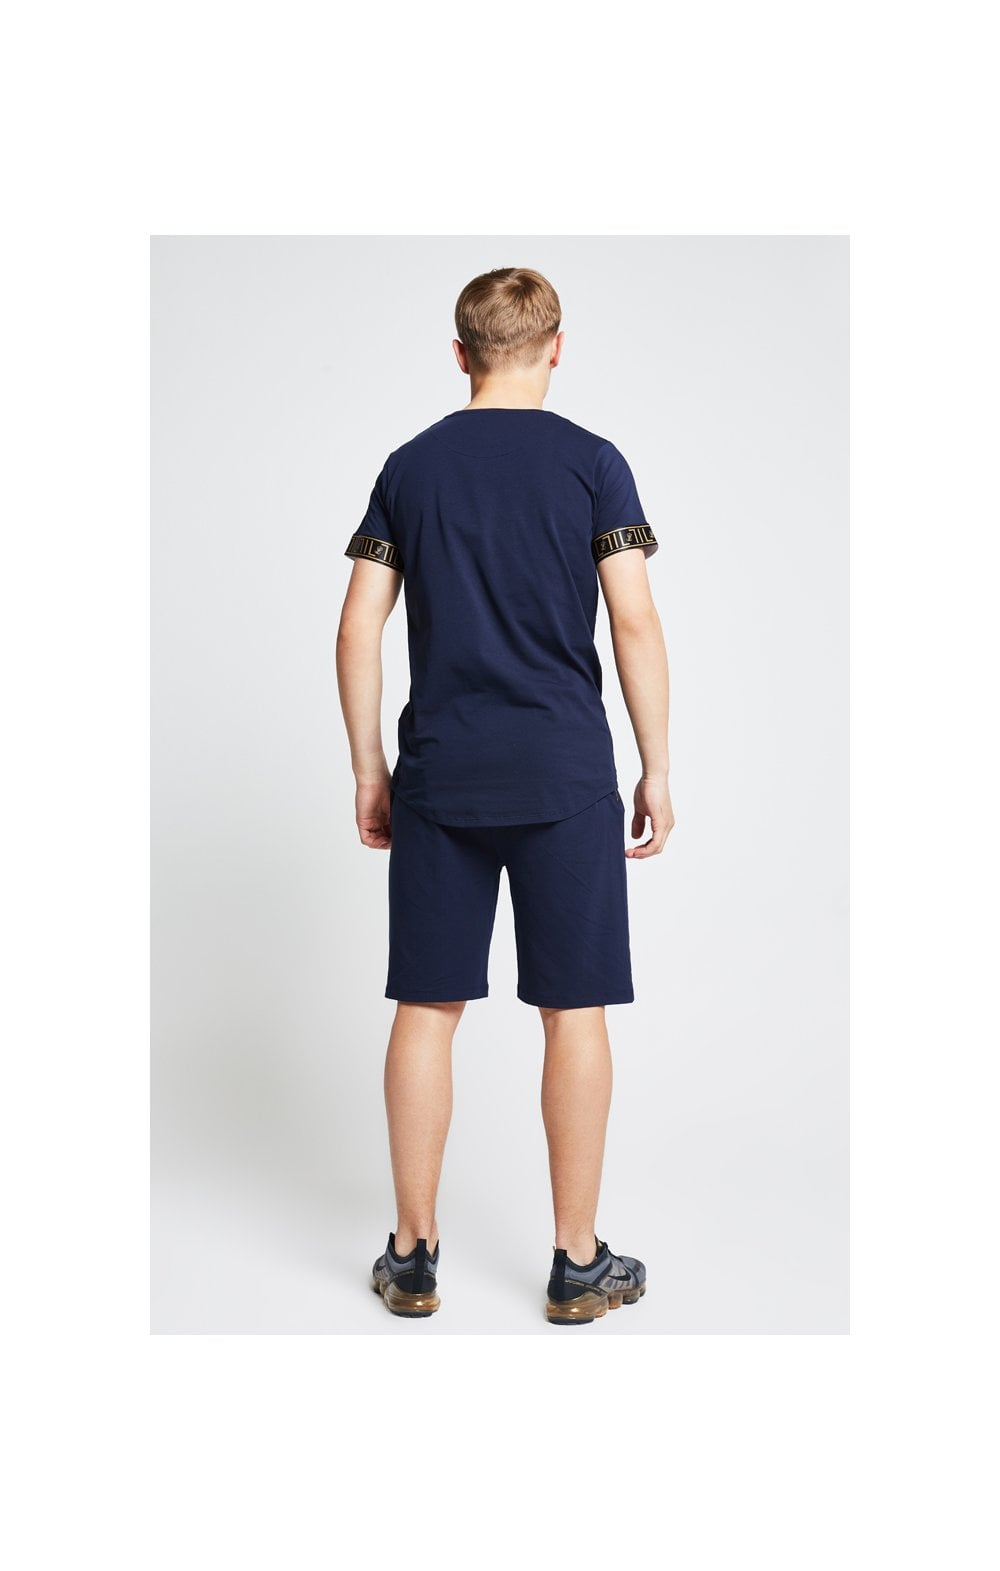 Illusive London Tape Jersey Shorts - Navy (5)